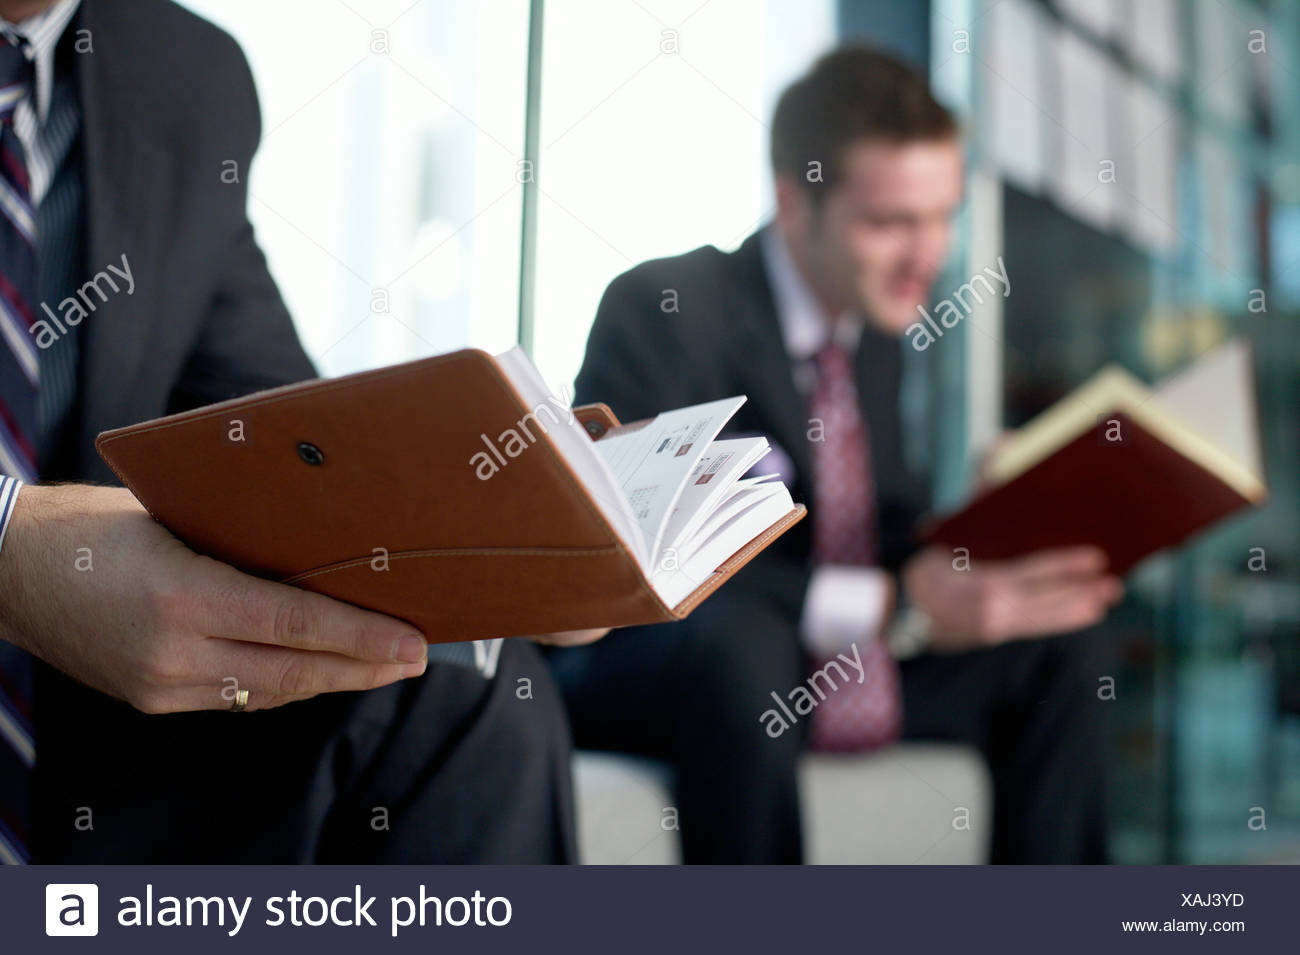 Two Businessmen looking in their diaries - Stock Image